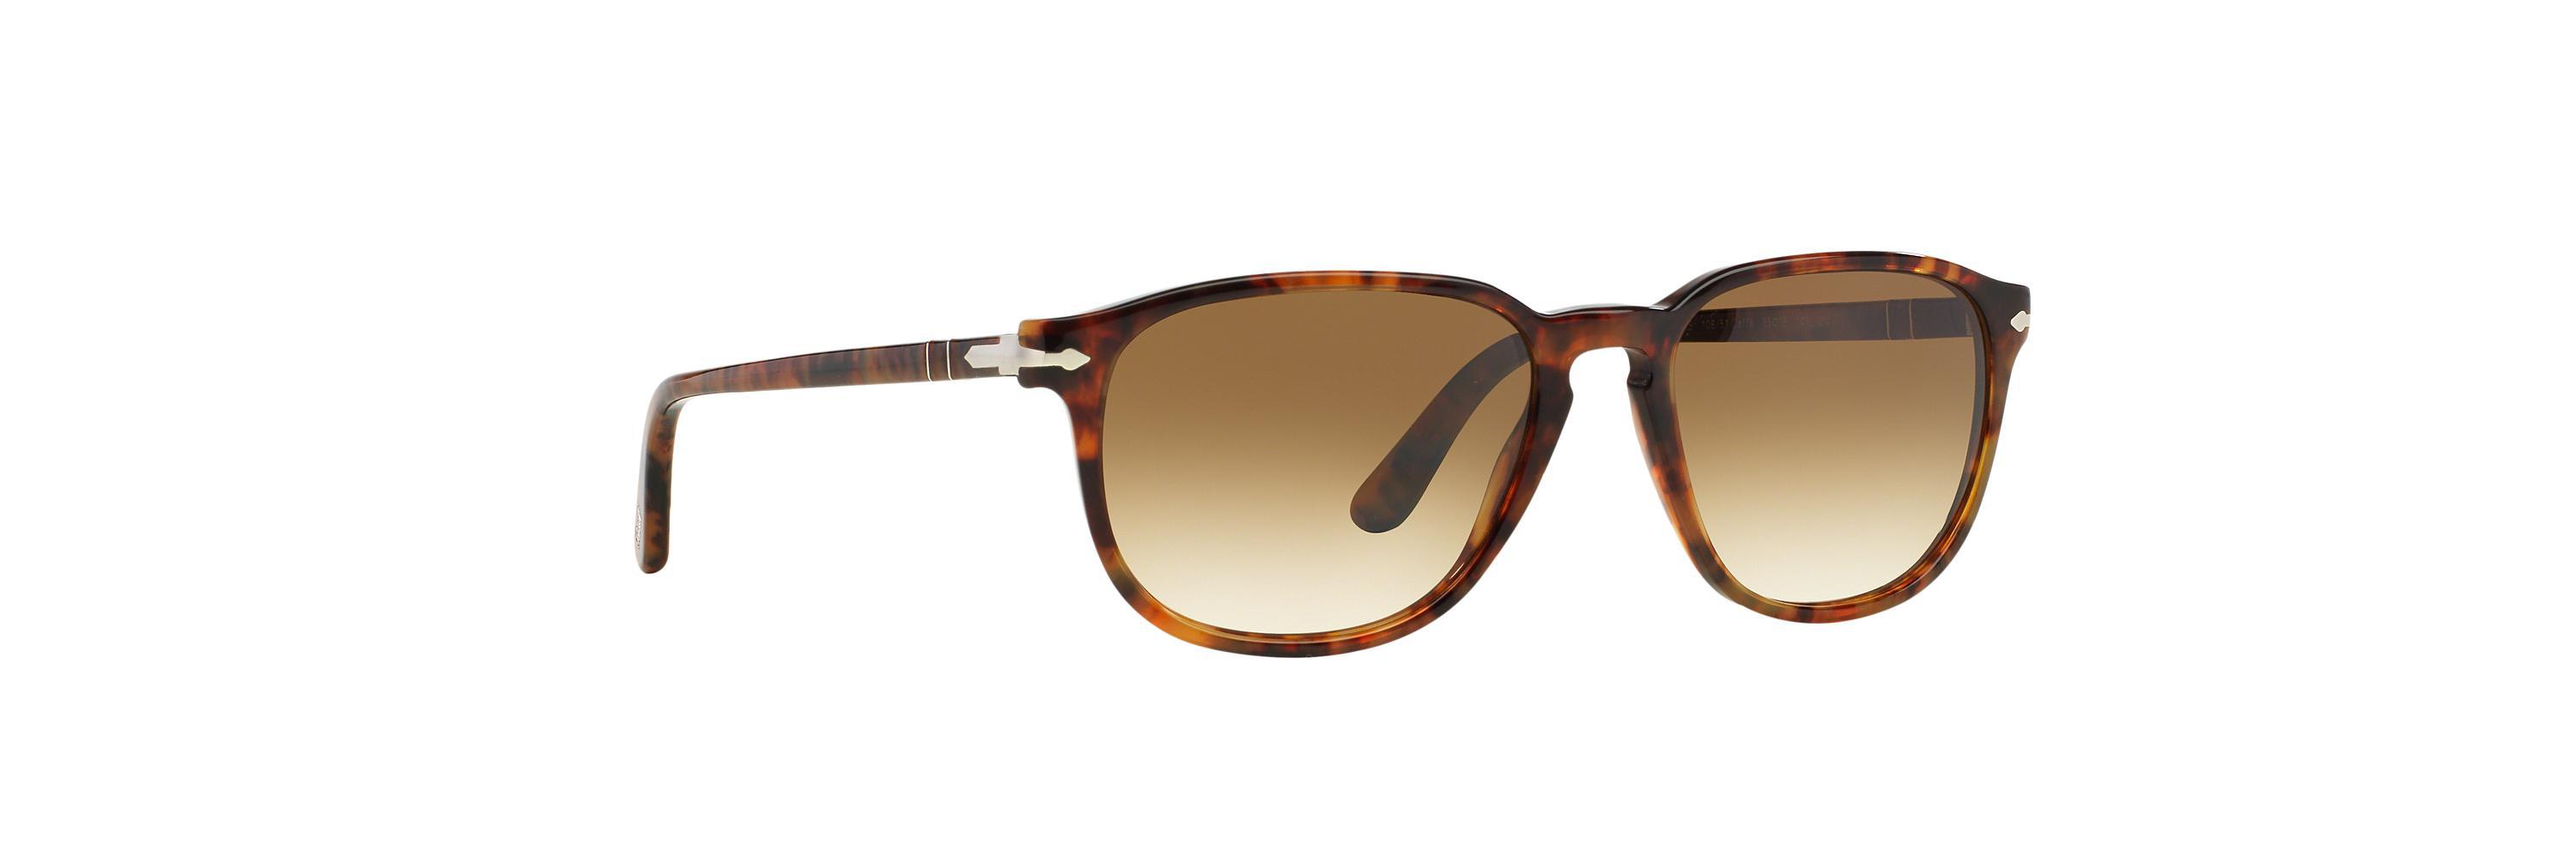 90b9df781d Persol Po3019s 52 in Brown for Men - Lyst